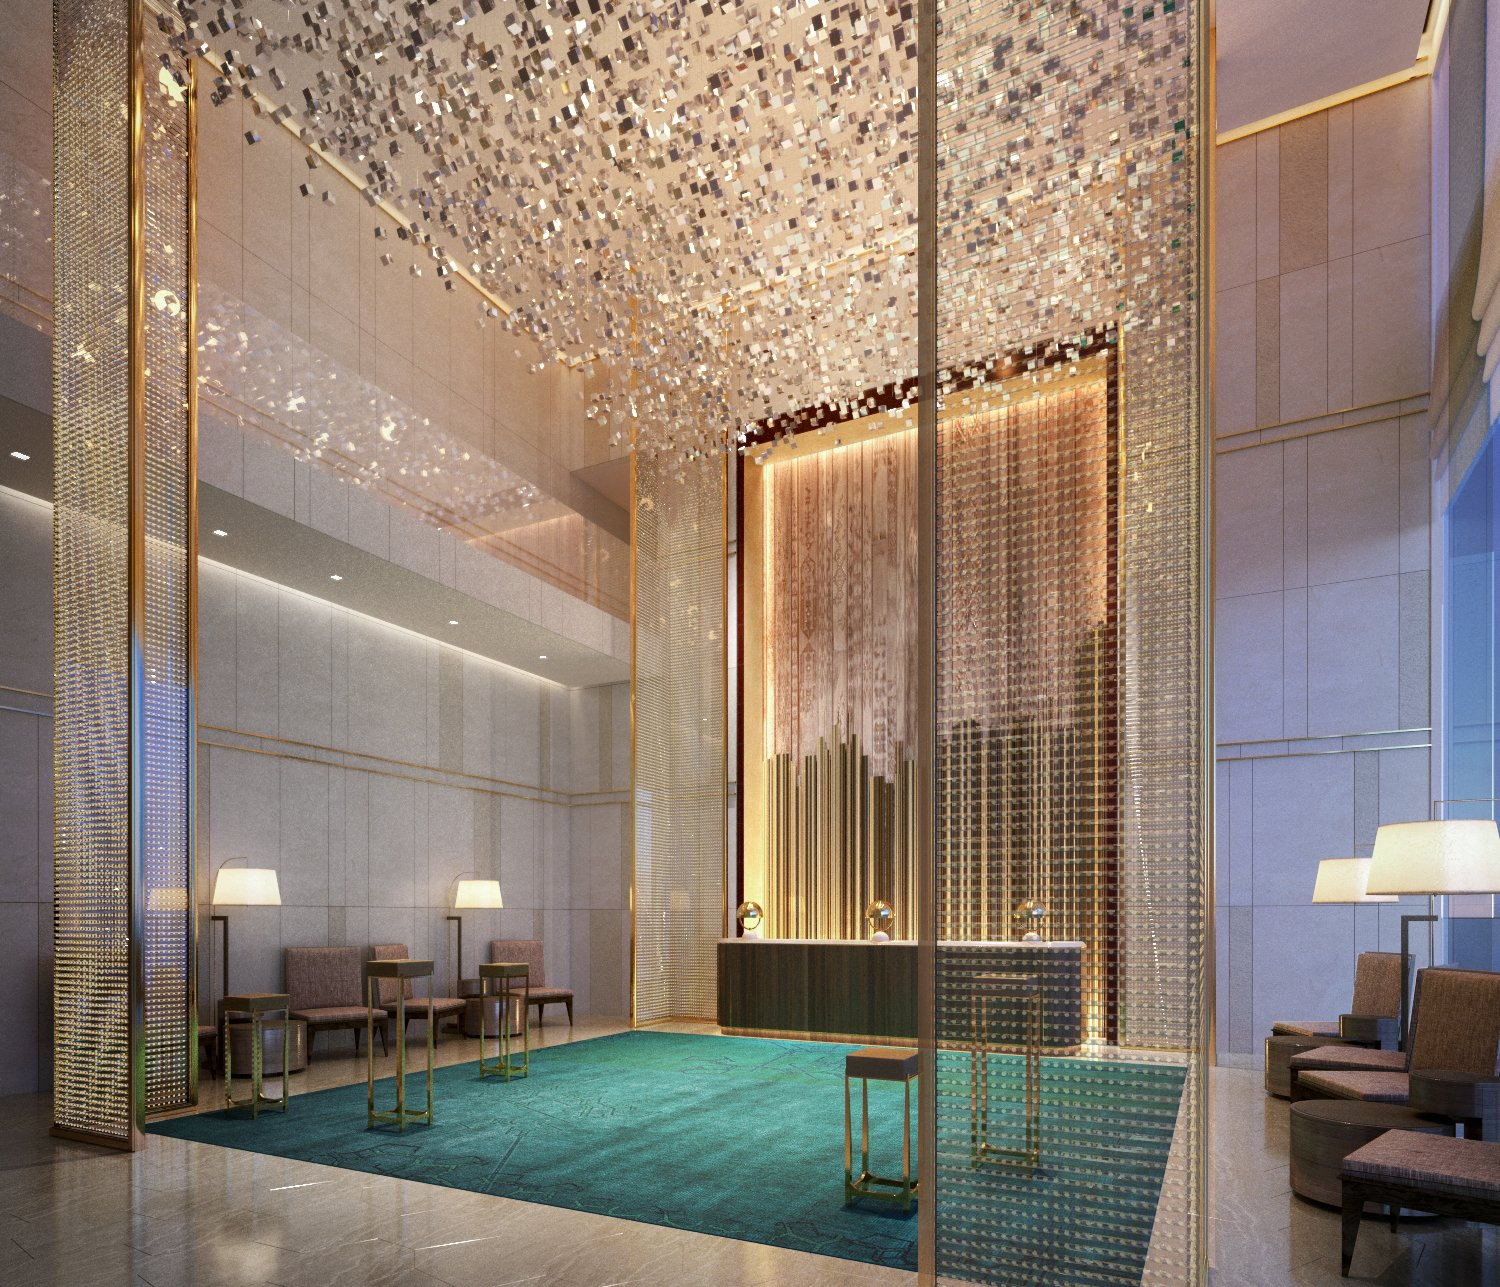 Langham hospitality group introduces new luxury hotel in dubai for Hotel de dubai